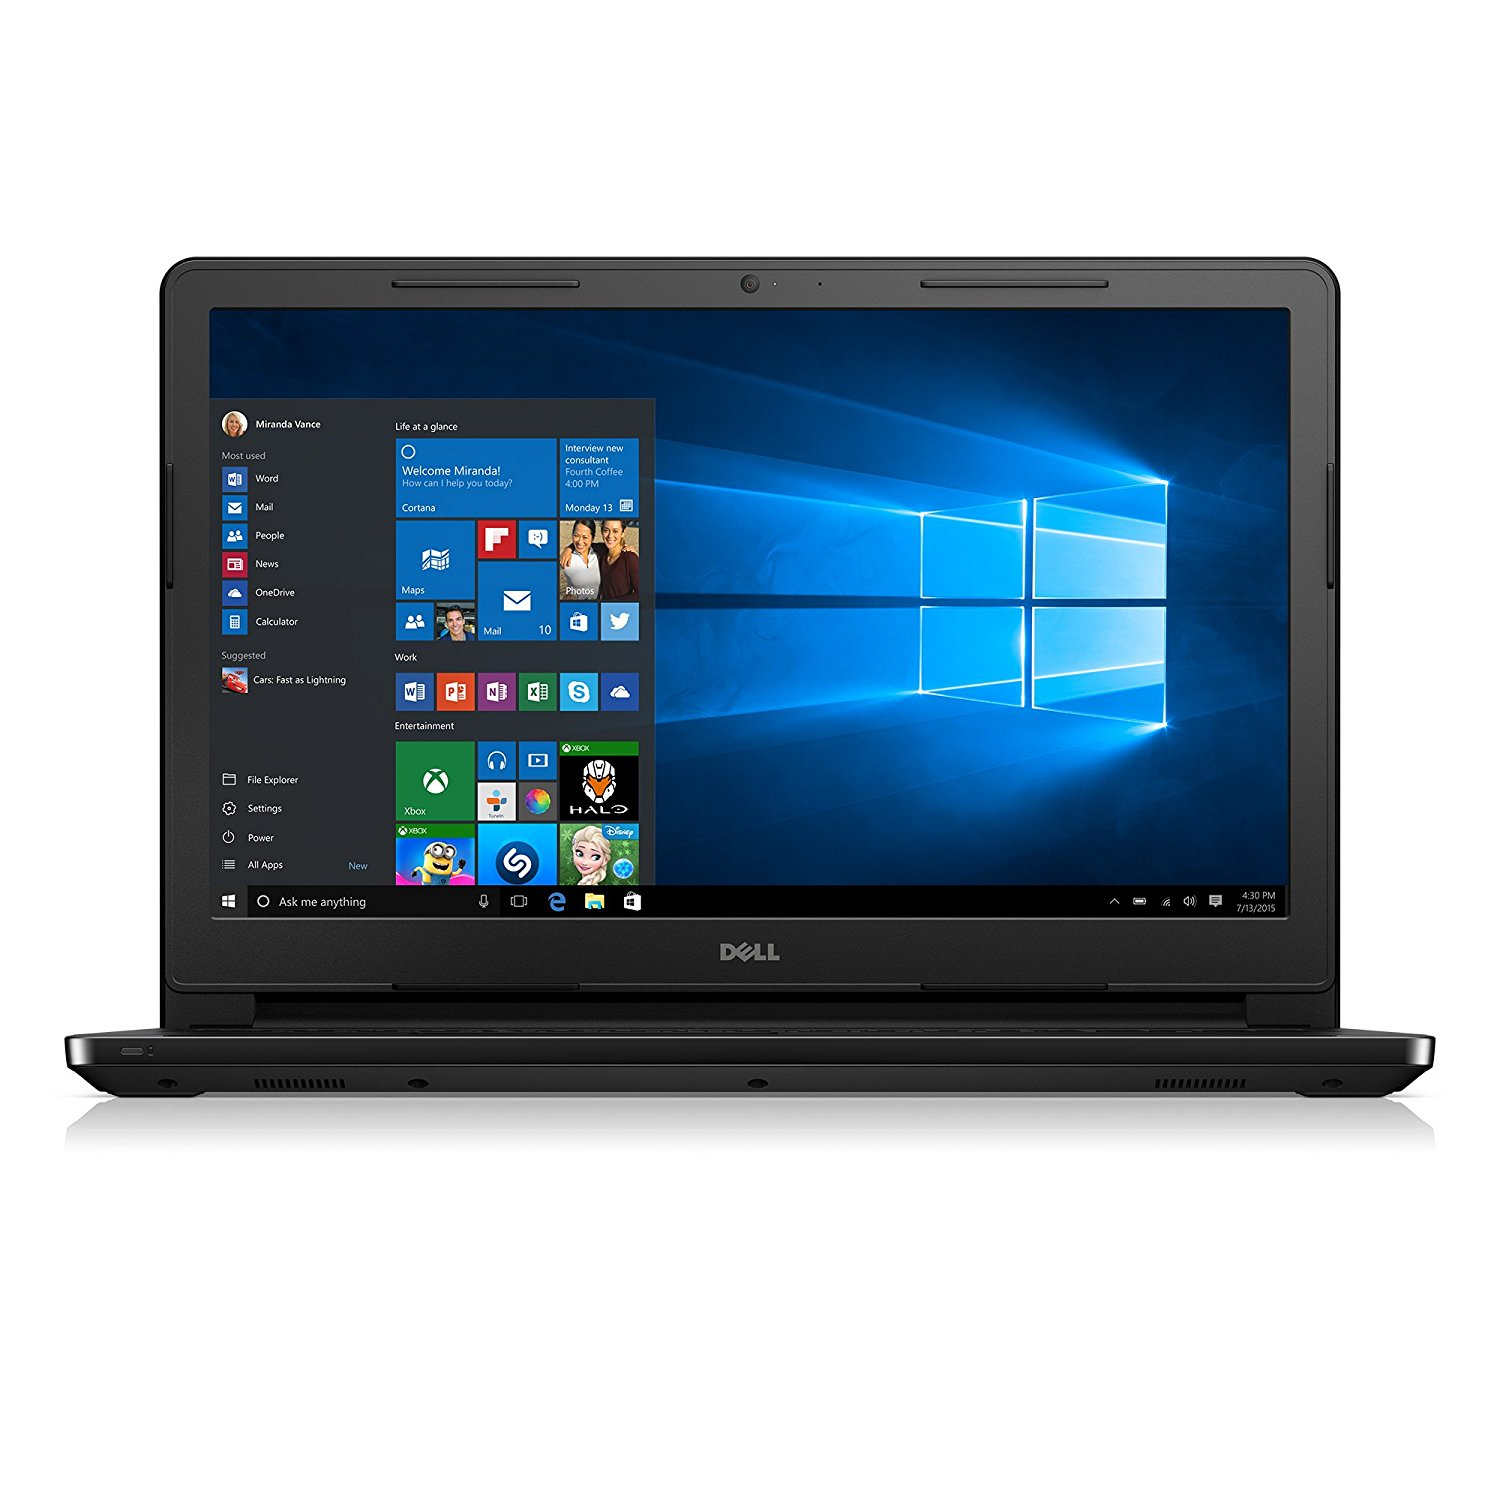 "NEW Dell i3552-3240BLK 15.6"" HD Laptop (Intel Pentium N3700 1.6GHz Processor, 4 GB DDR3L SDRAM, 500 GB HDD, Windows 10) Black"